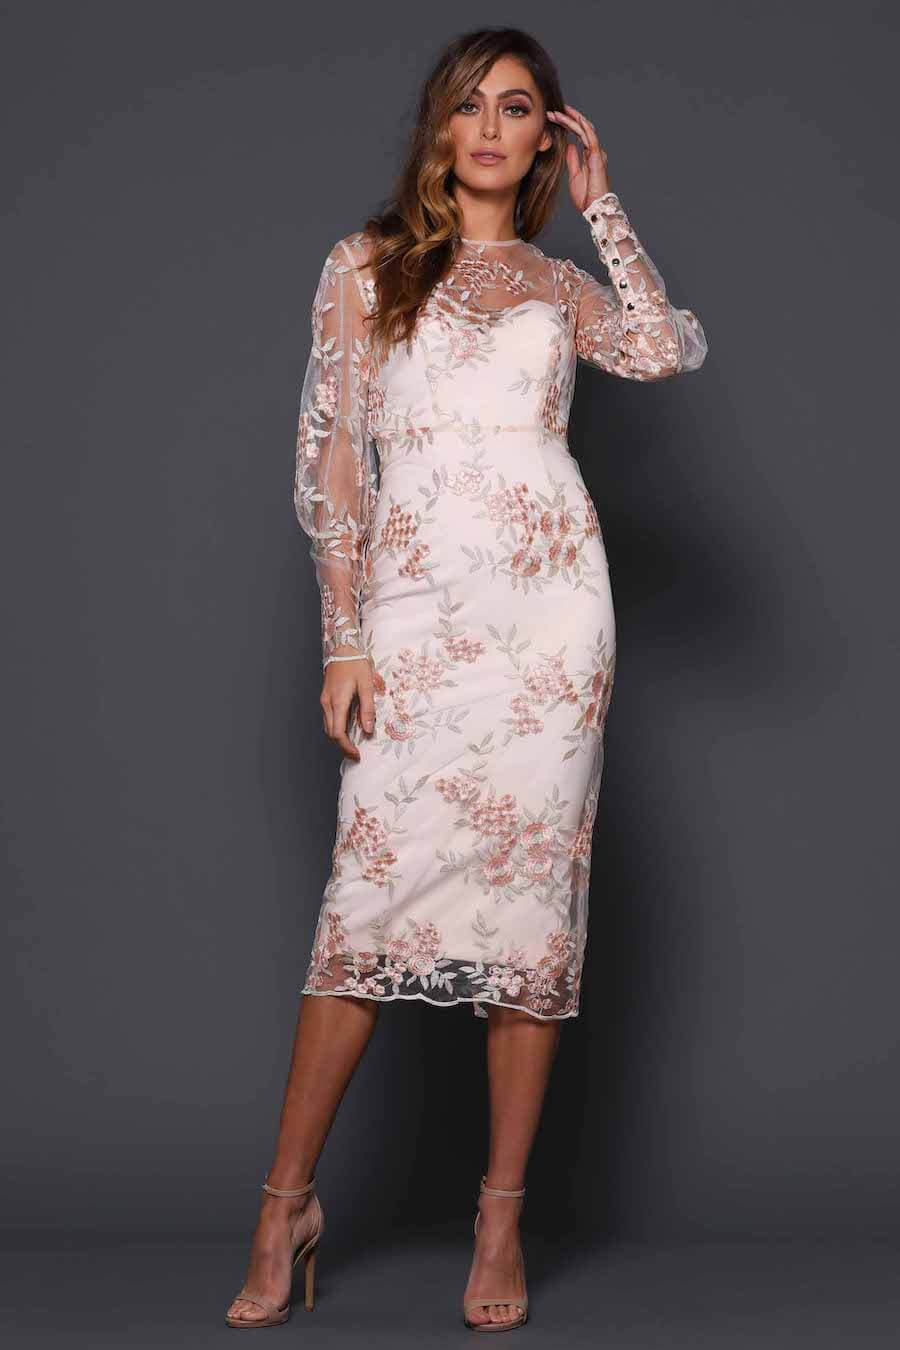 Ivory embroidered floral long sleeve dress